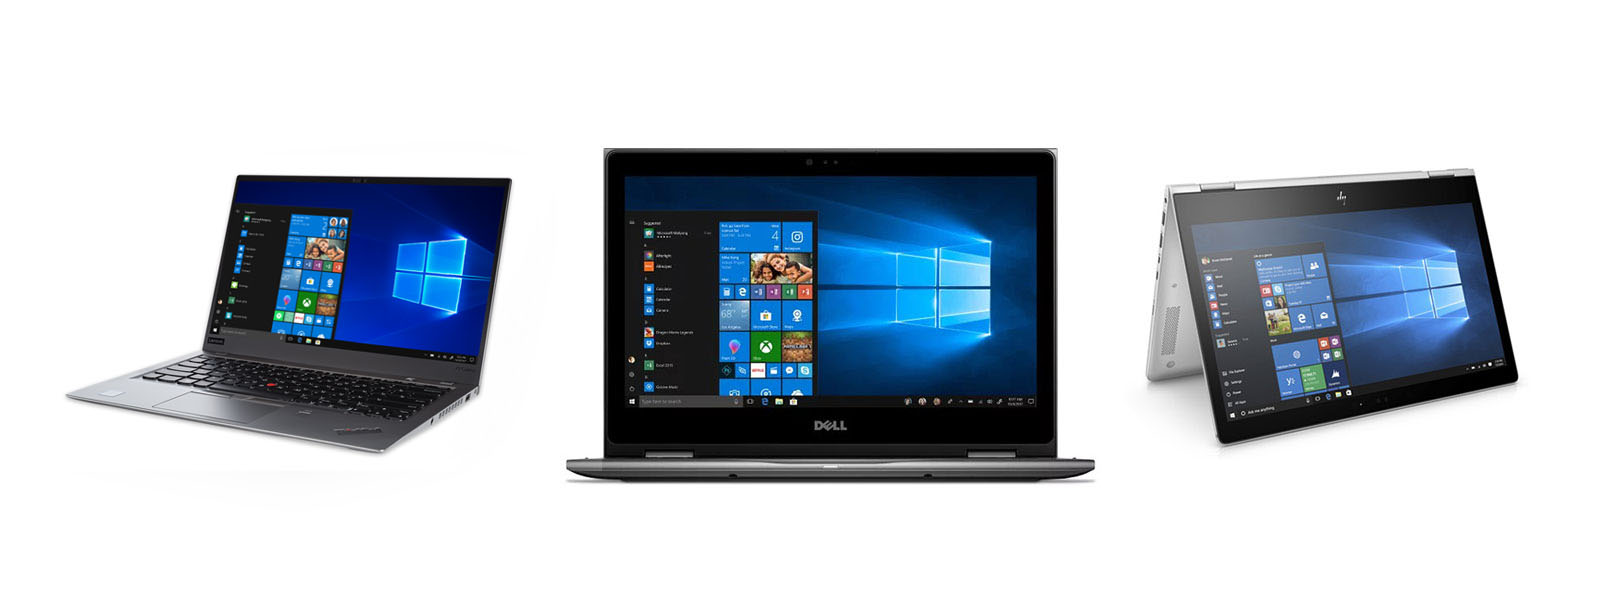 Dell laptops with Windows